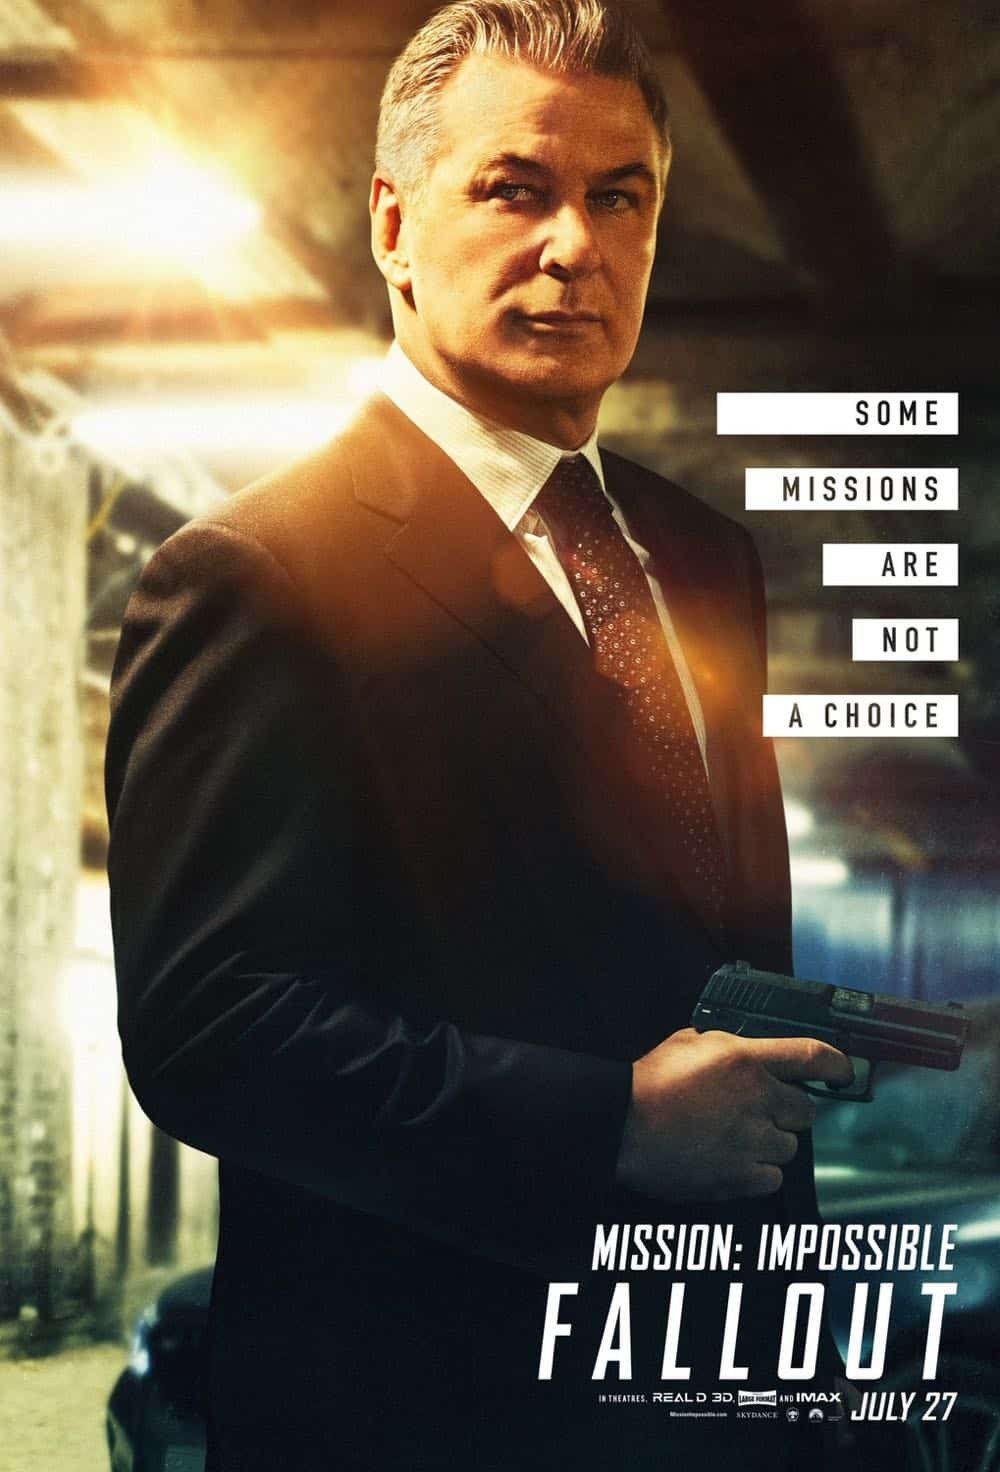 Mission Impossible Fallout Character Movie Poster Alec Baldwin